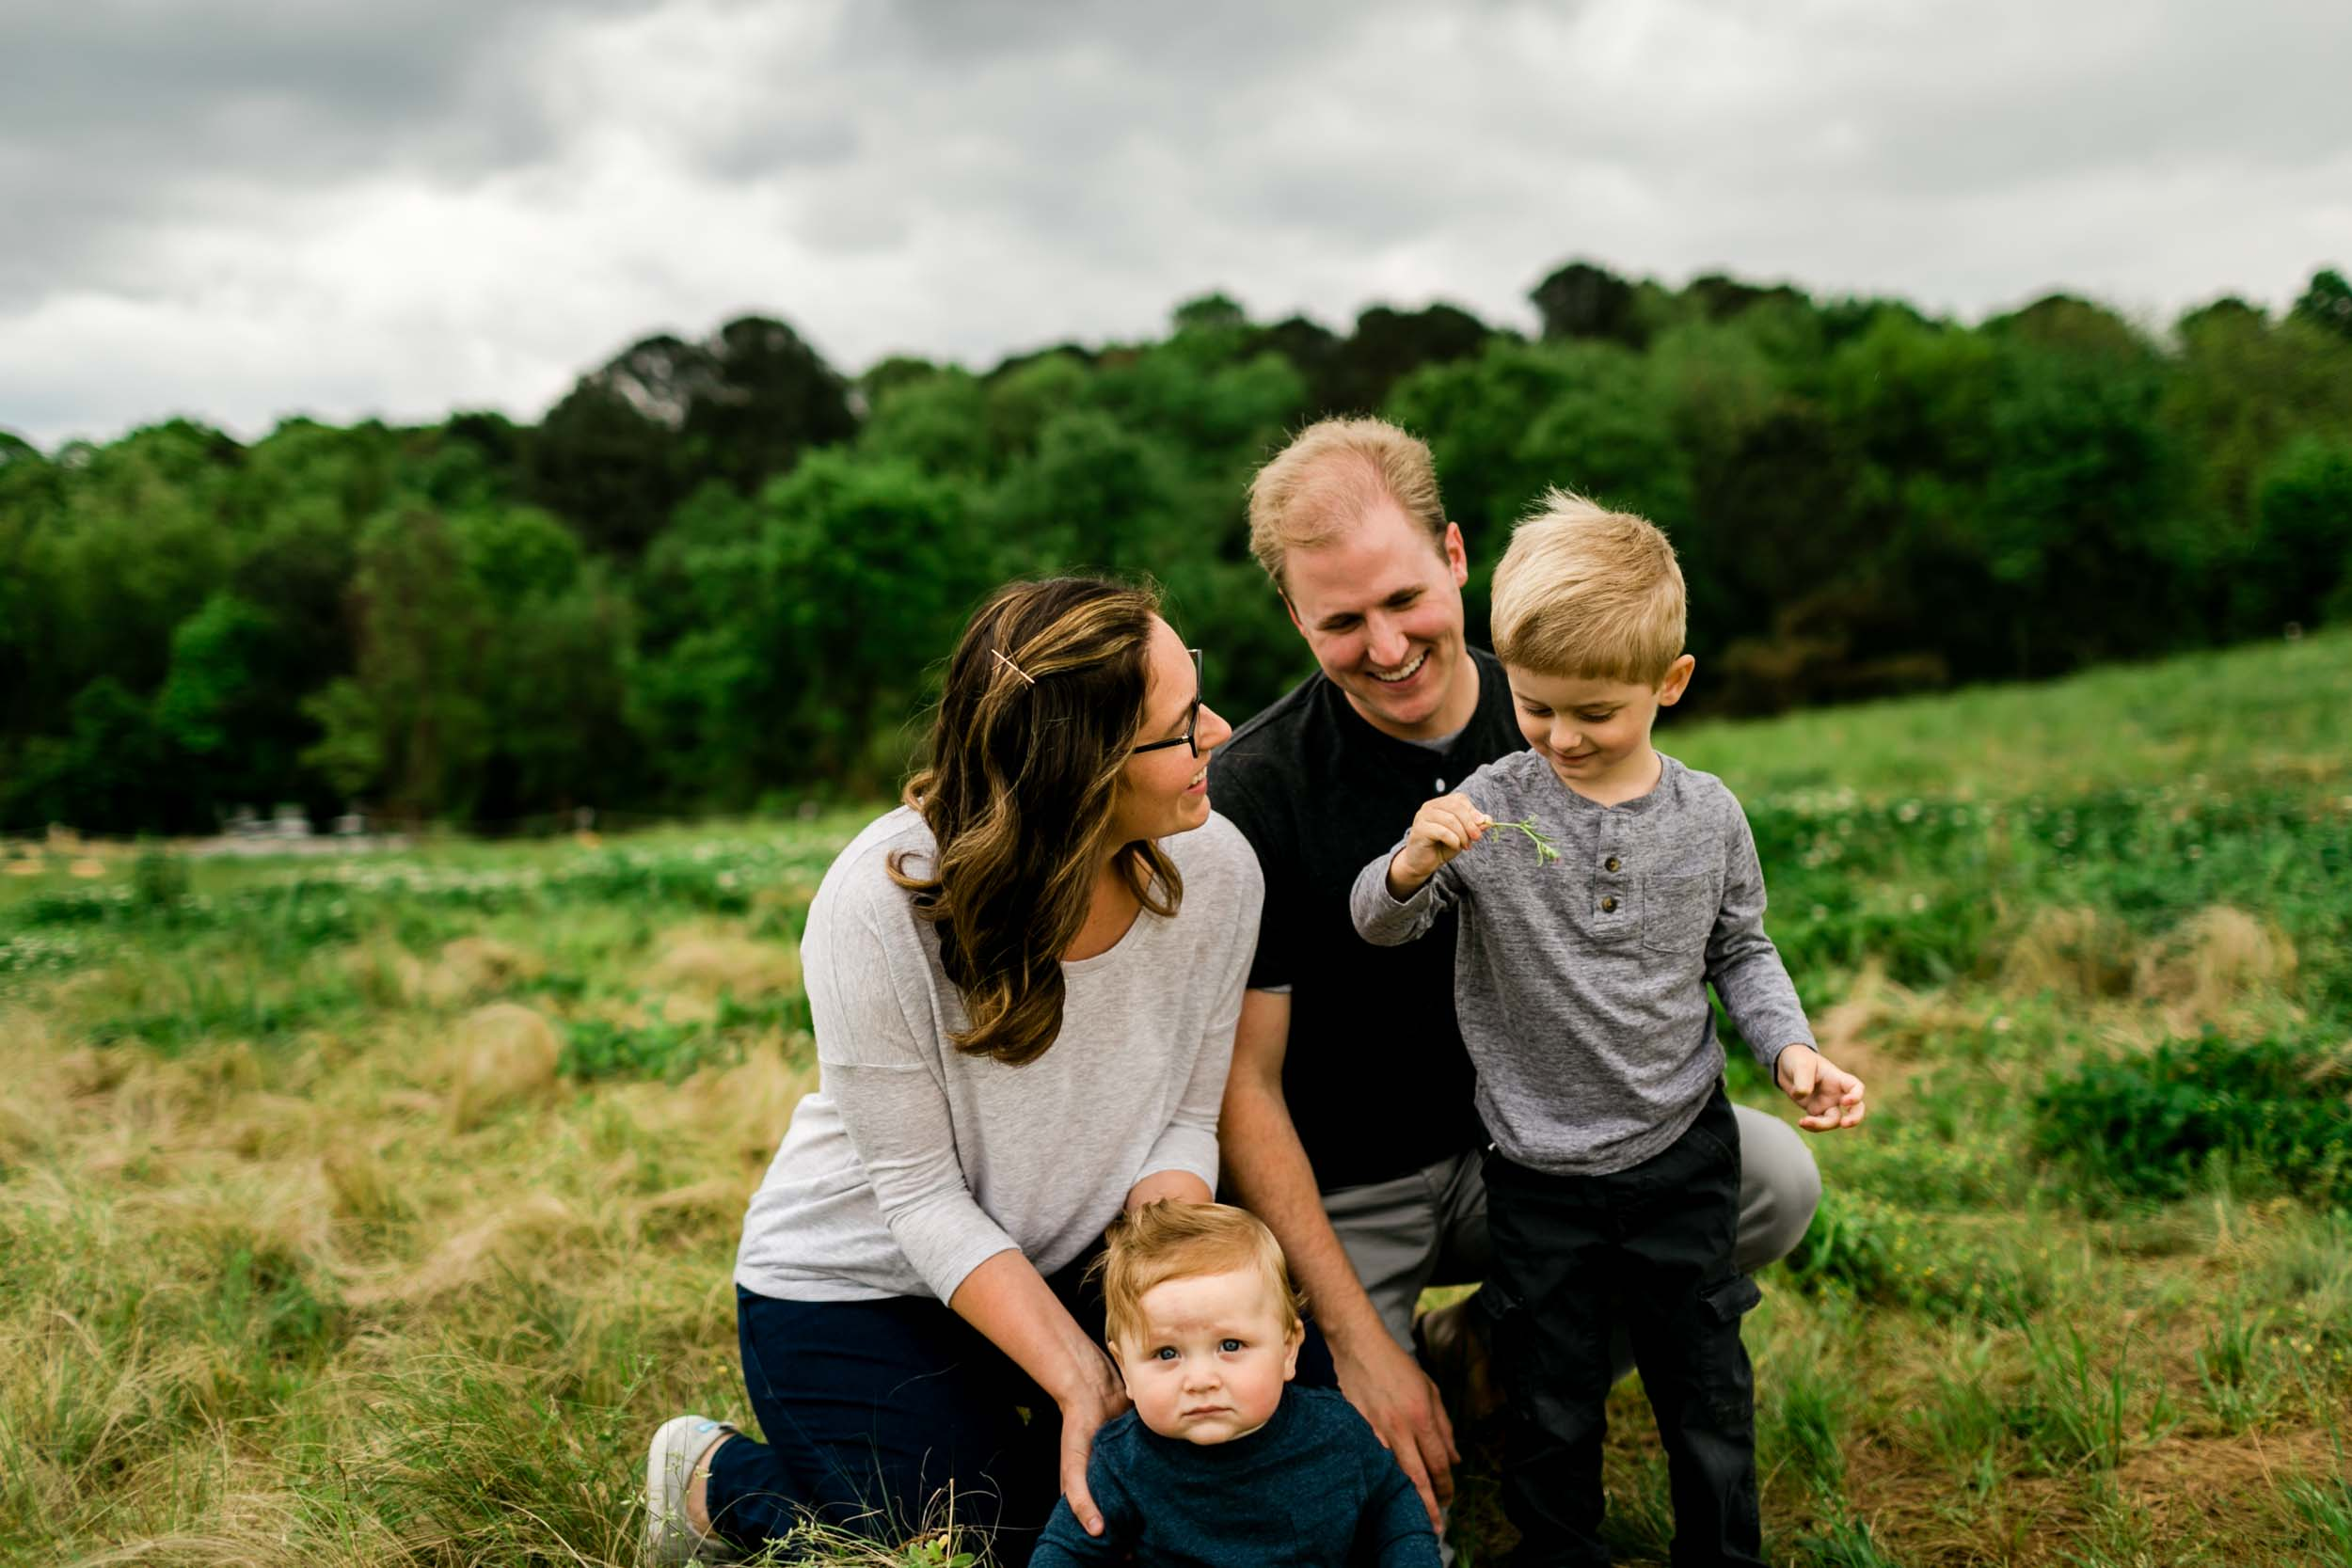 Organic family photo outside during spring time | Durham Family Photographer | By G. Lin Photography